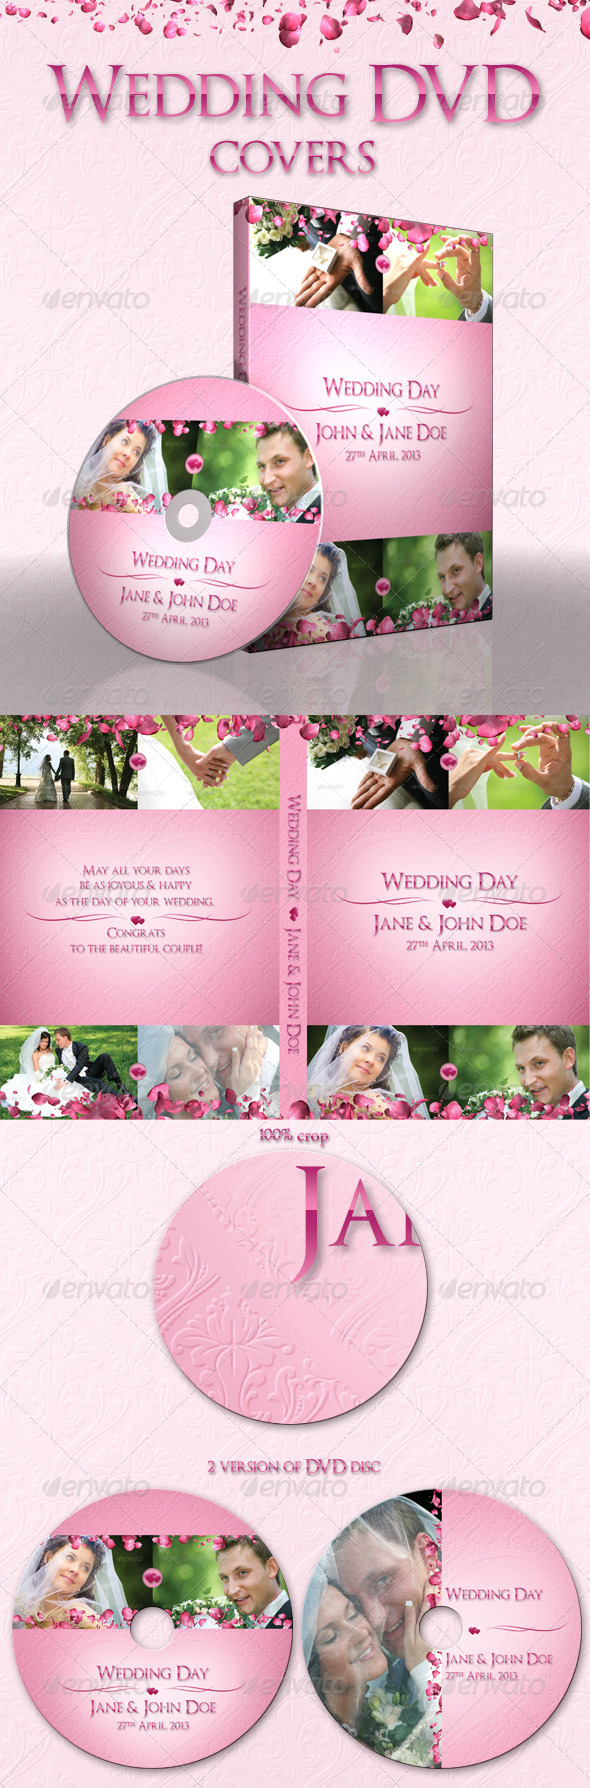 GraphicRiver Wedding DVD covers 4783377